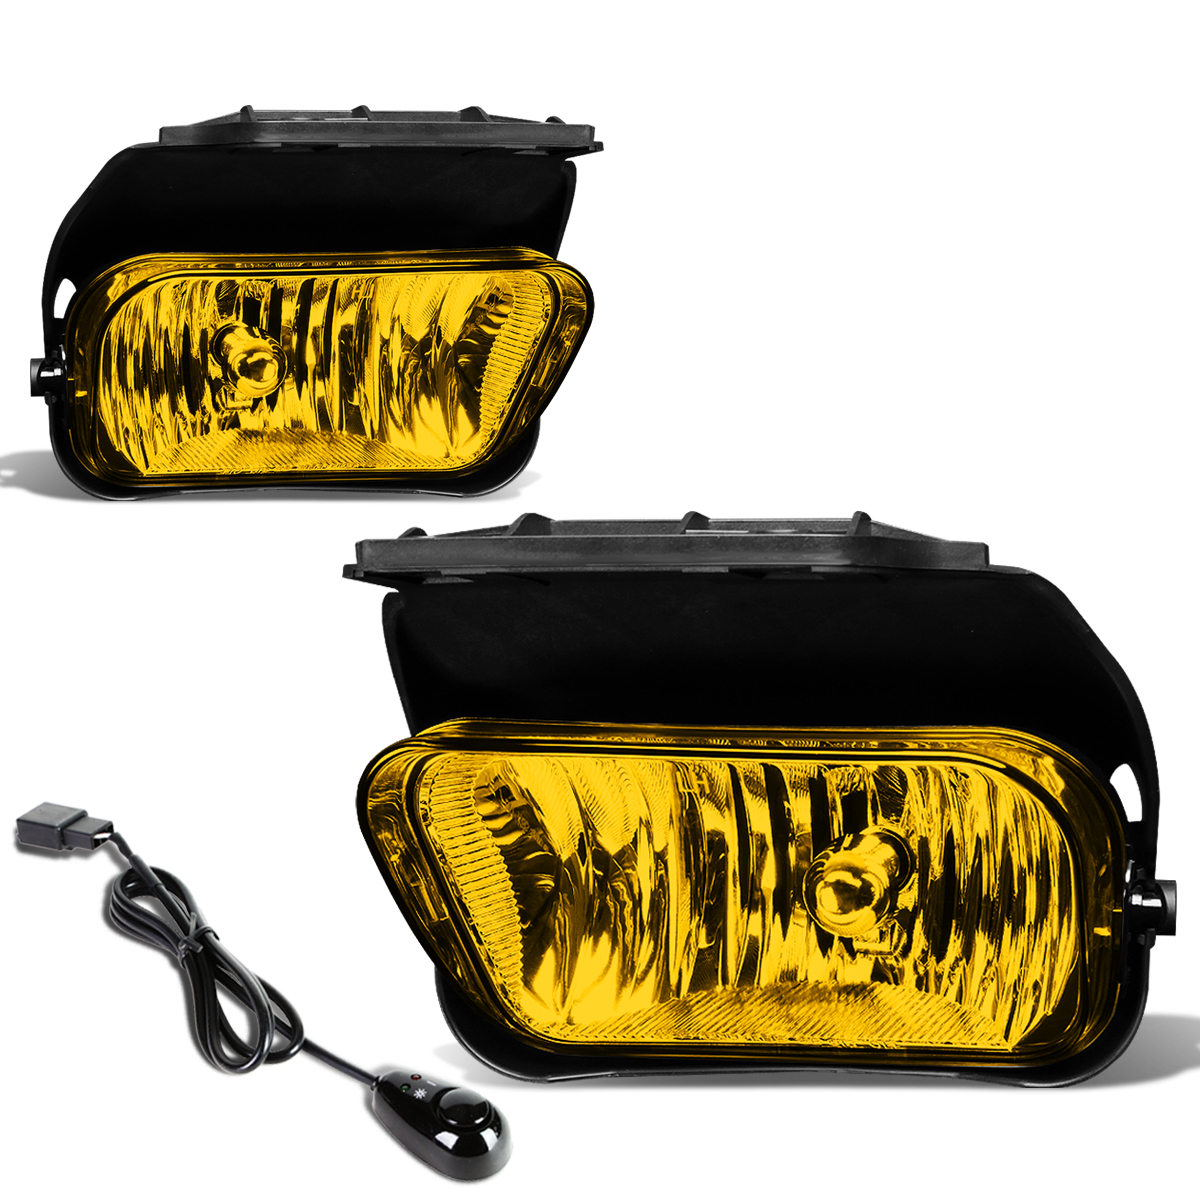 For 2002 To 2007 Chevy Silverado Pair Of Bumper Driving